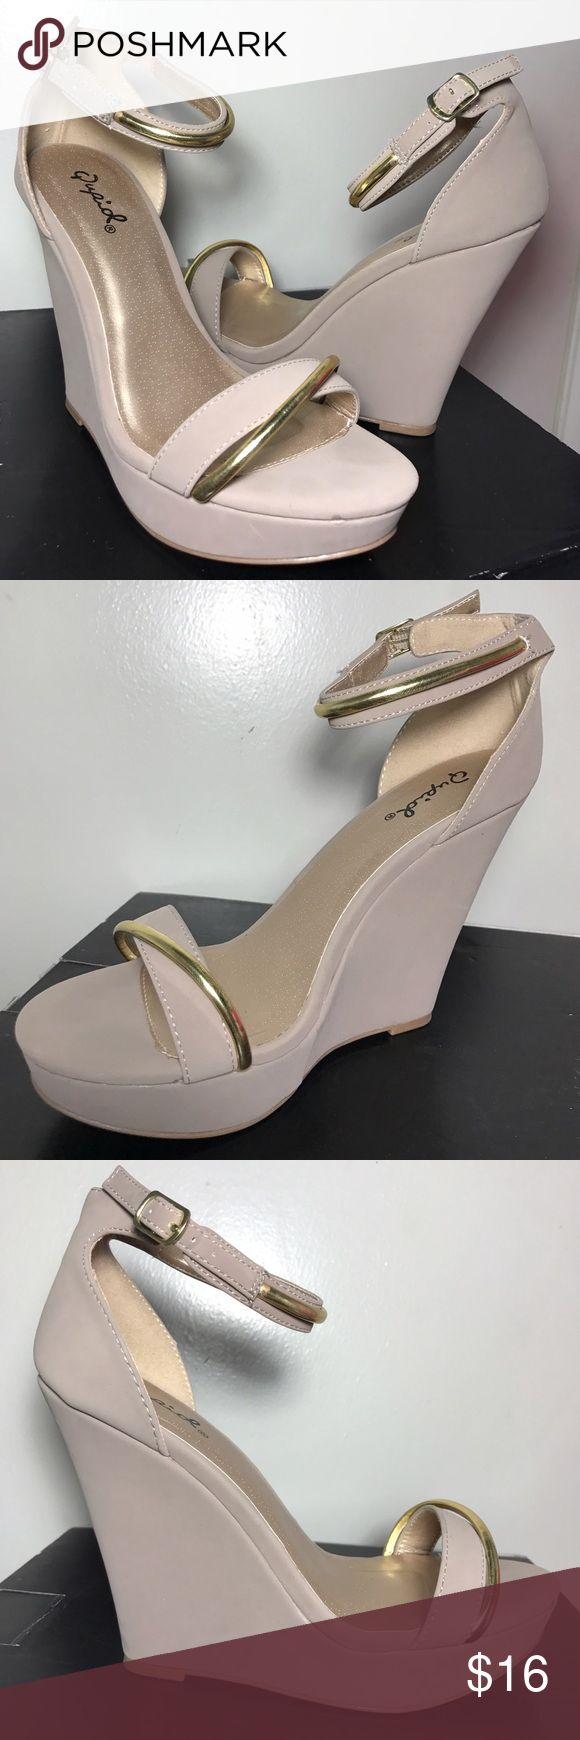 Ankle strap wedge sandal Single band topped with metallic strip accent across open toe with adjustable ankle strap also adorned with metallic strip accent. Back zipper for easy on/off set on a wrapped platform wedge *gently used in good condition without shoebox* last photo shows soles *fits true to size* Qupid Shoes Wedges